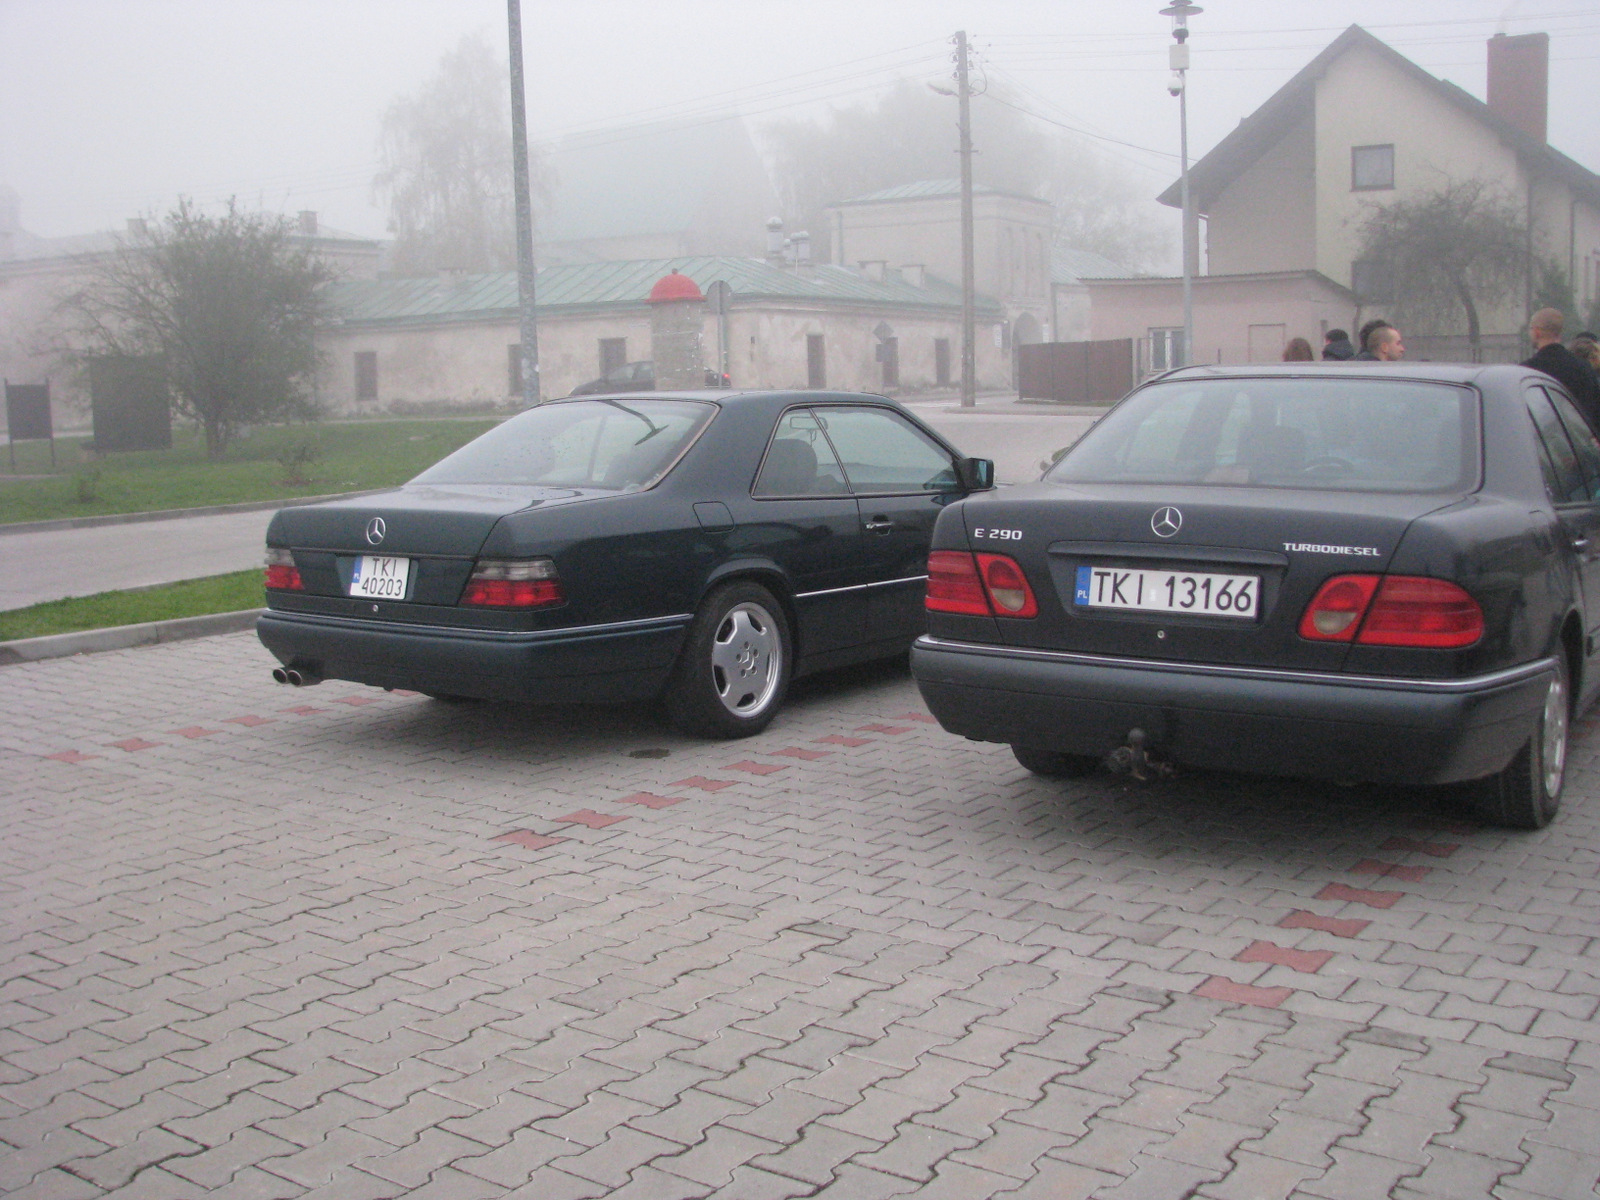 http://124coupe.pl/hosting/images/img000frf.jpg